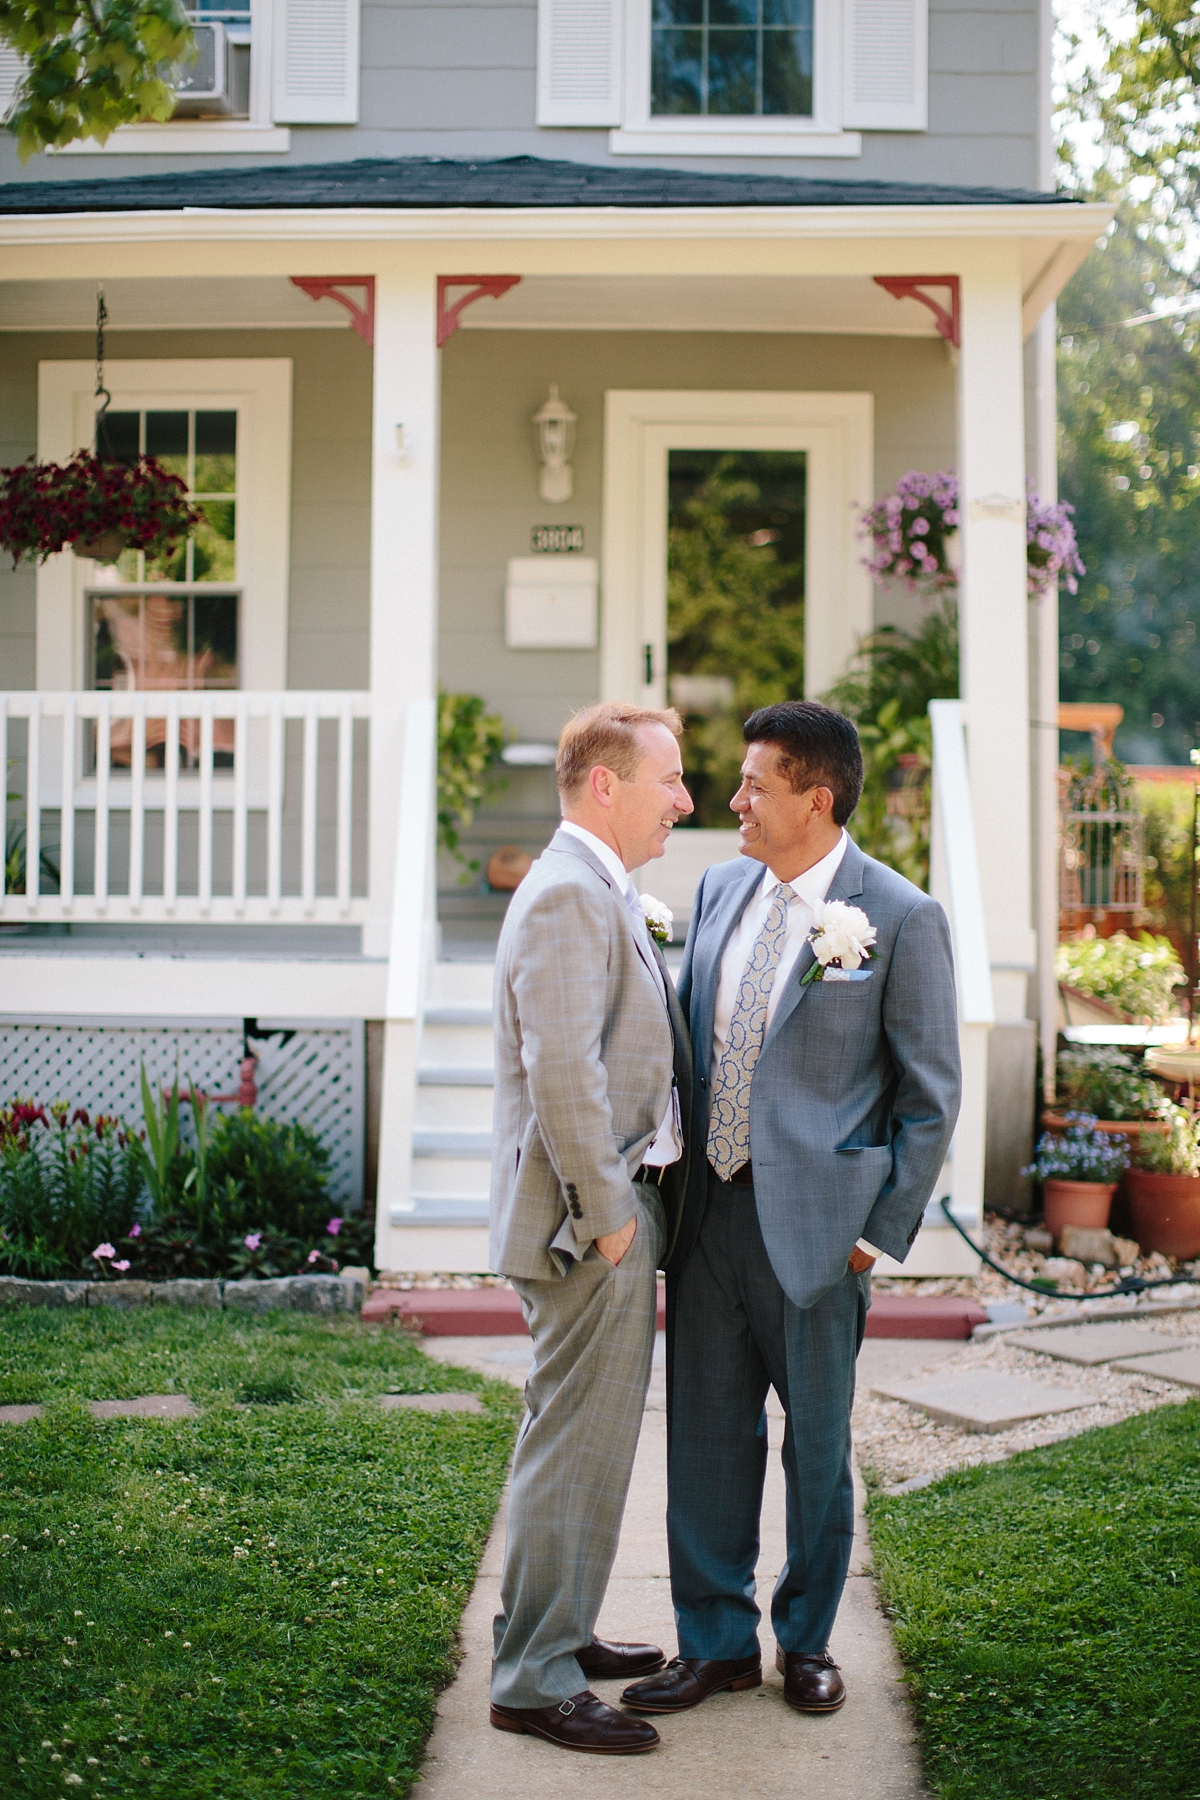 destination-same-sex-wedding-photographer-washington-dc-gay-marriage_0020.jpg